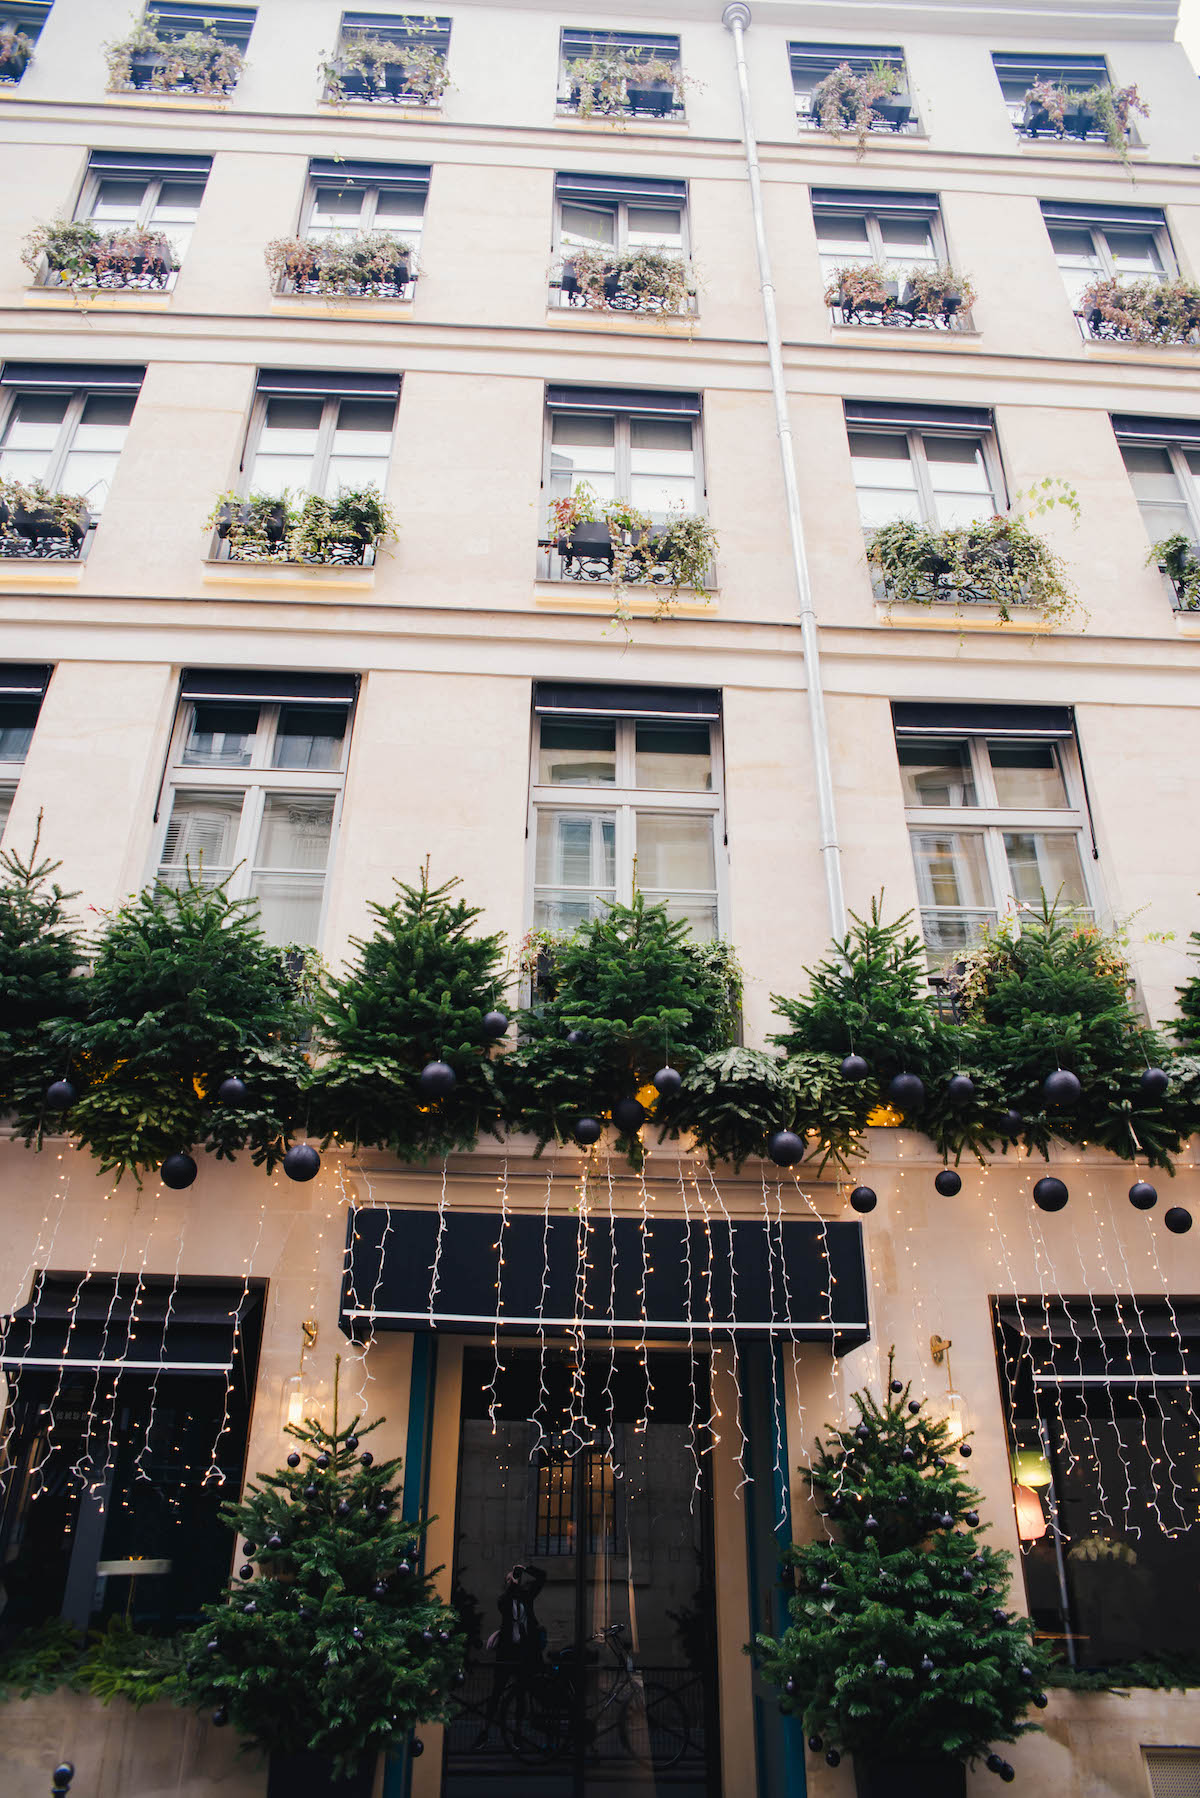 Le Roch Hotel Paris Travel Guide First Time Visiting Paris Itinerary Katie